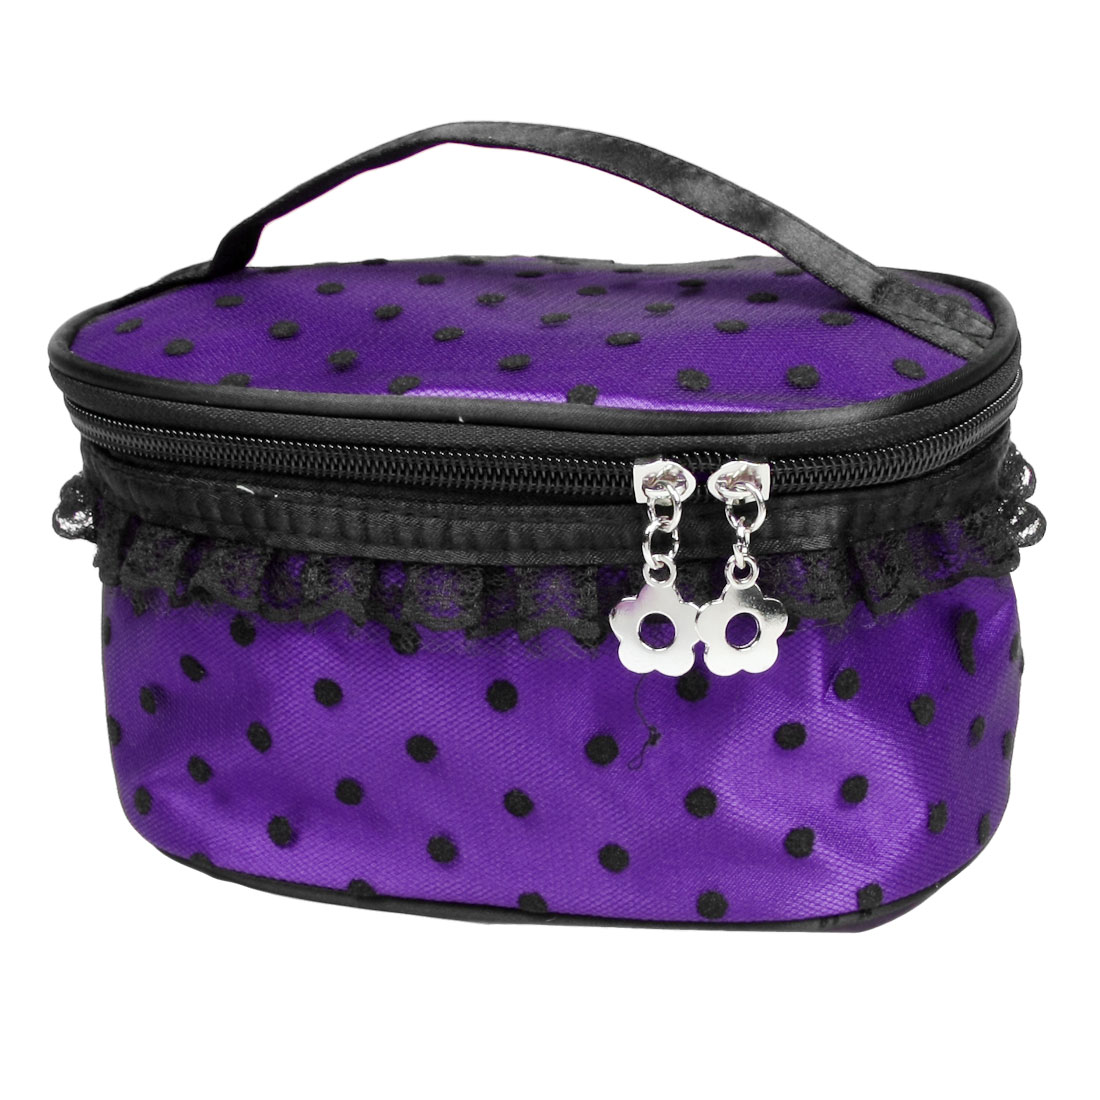 Purple Black Zipper Closure Portable Meshy Lace Toiletry Makeup Cosmetic Case